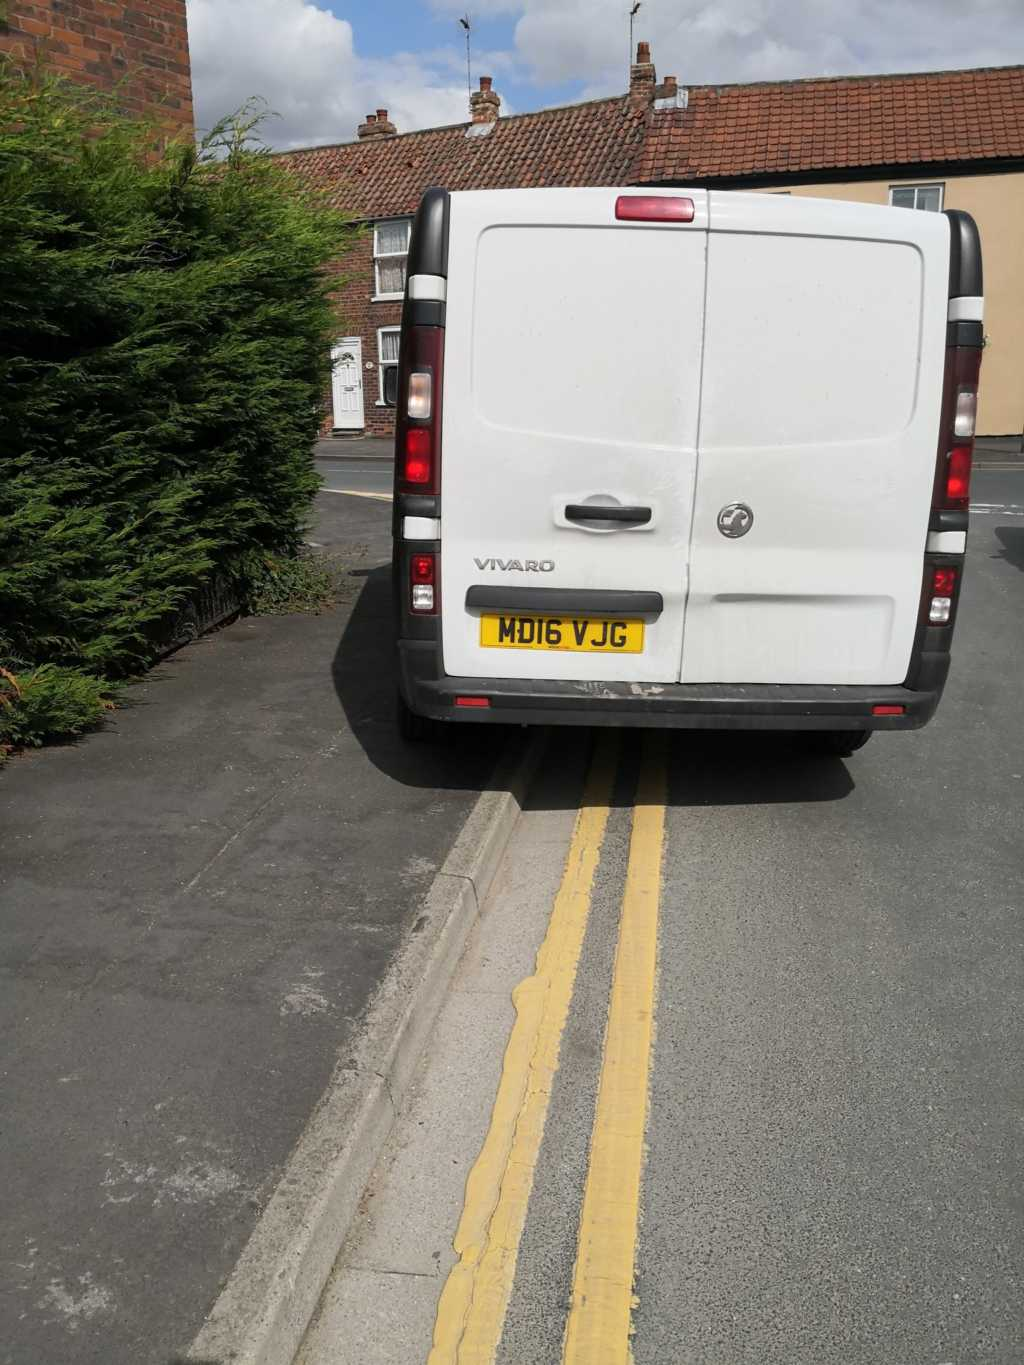 MD16 VJG displaying Inconsiderate Parking